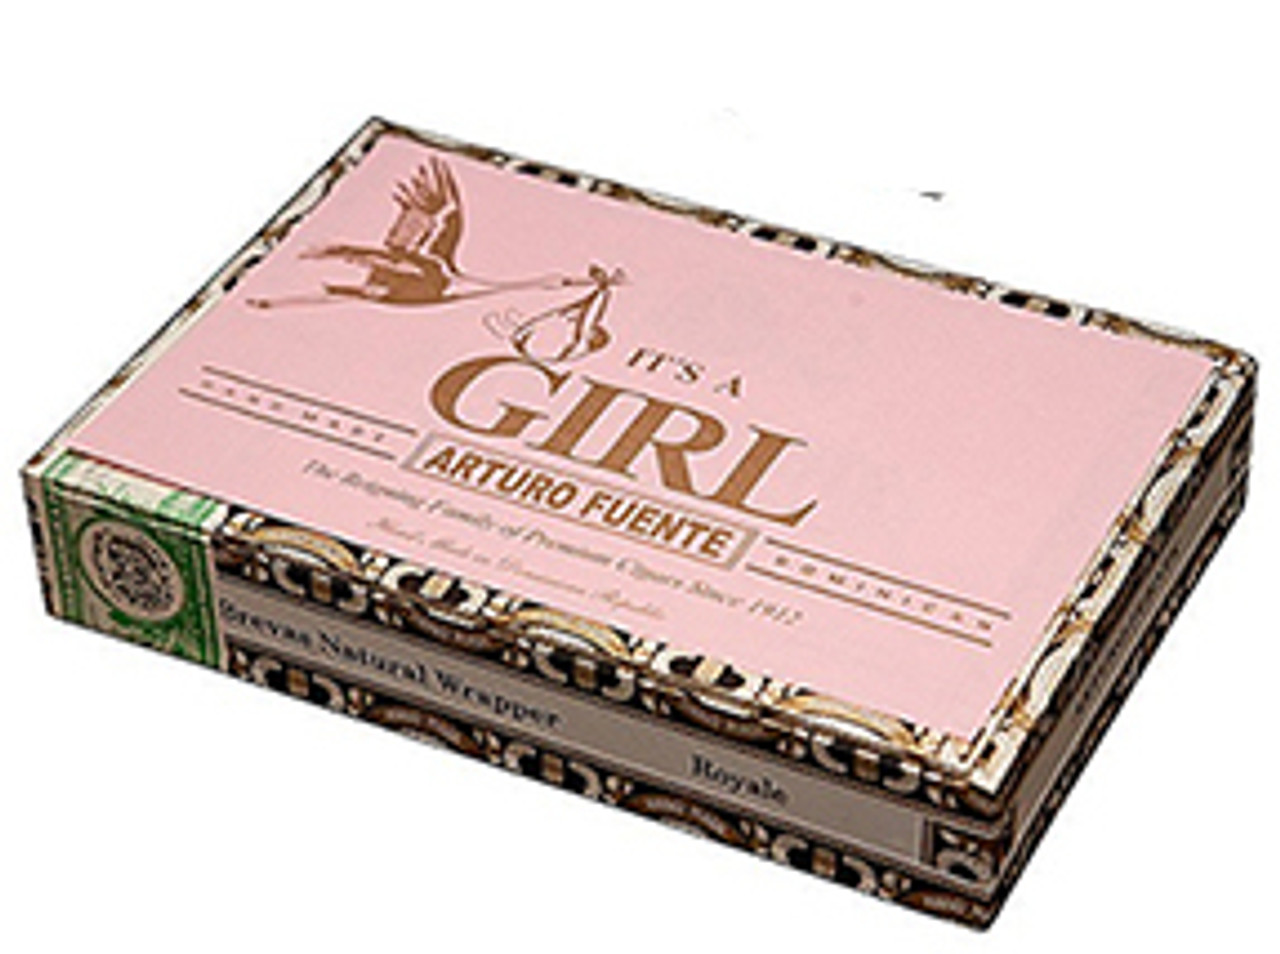 Arturo Fuente Brevas It's A Girl Cigars - 5.50 x 42 (Box of 25)